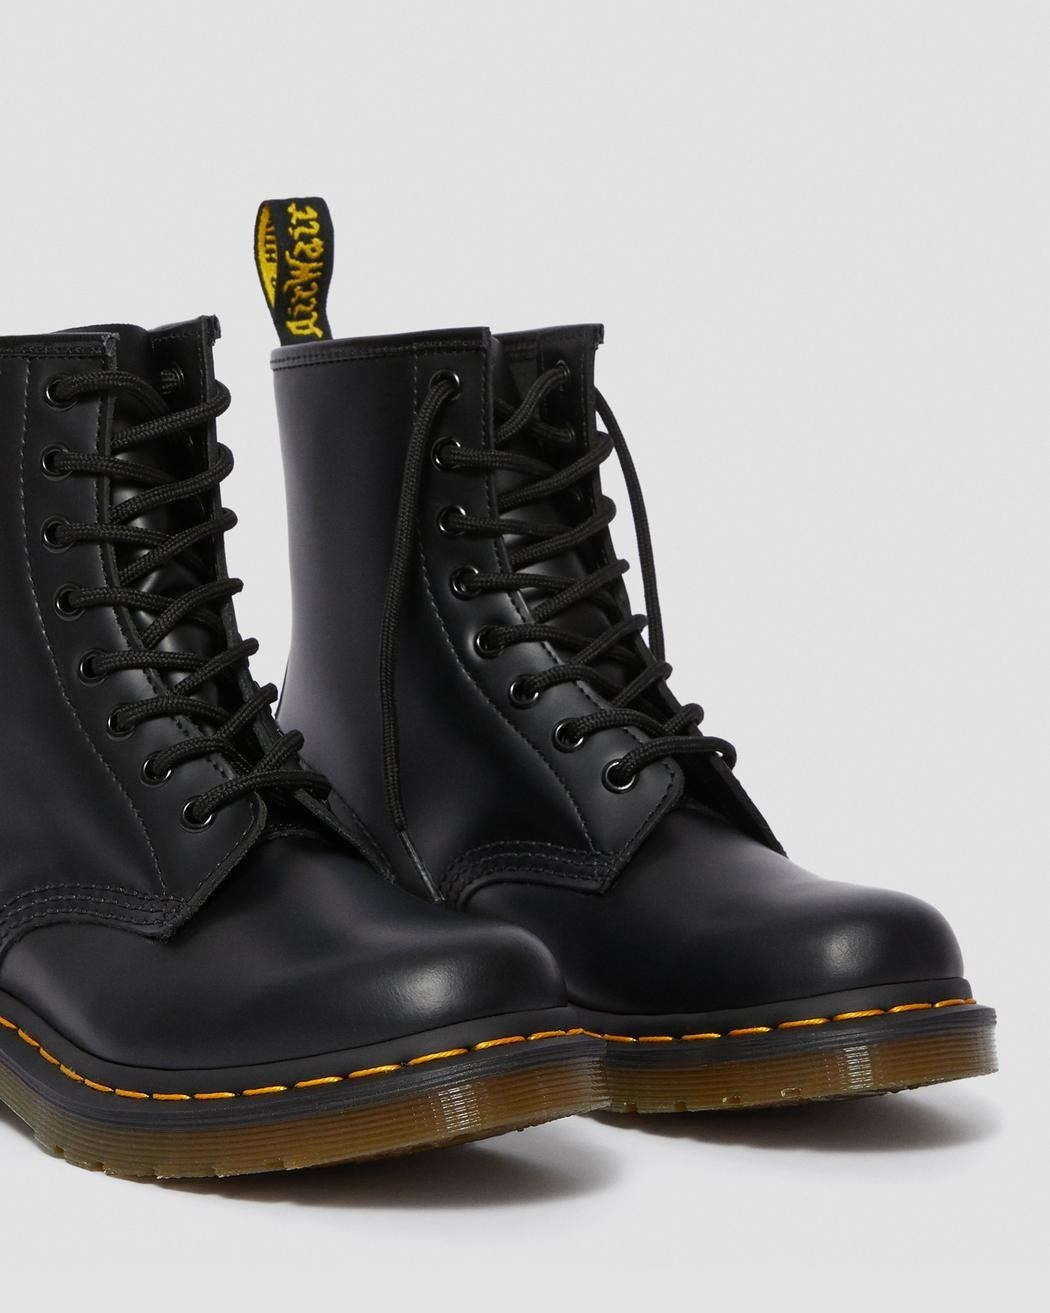 The black lace-up boots with yellow stitching around the sole